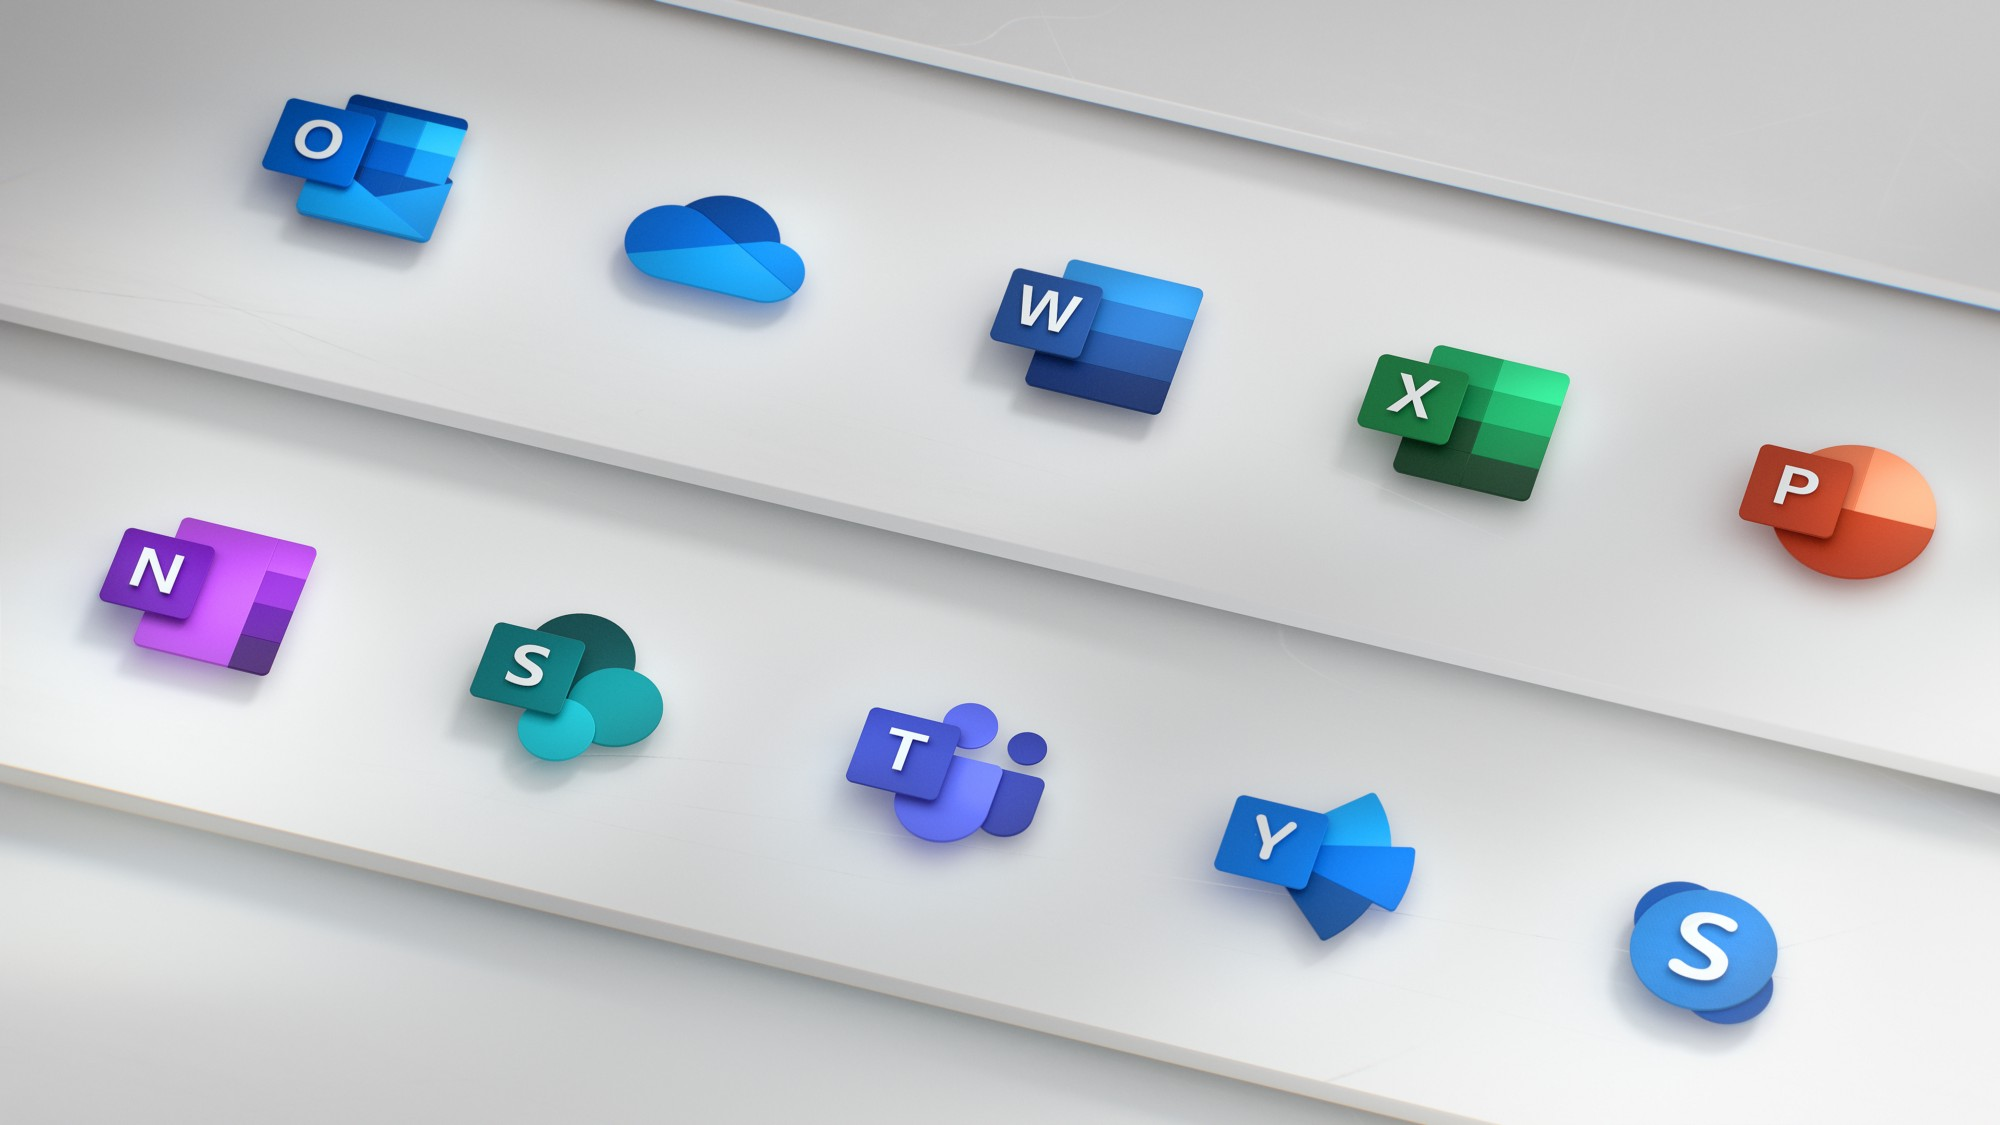 ms office new icon